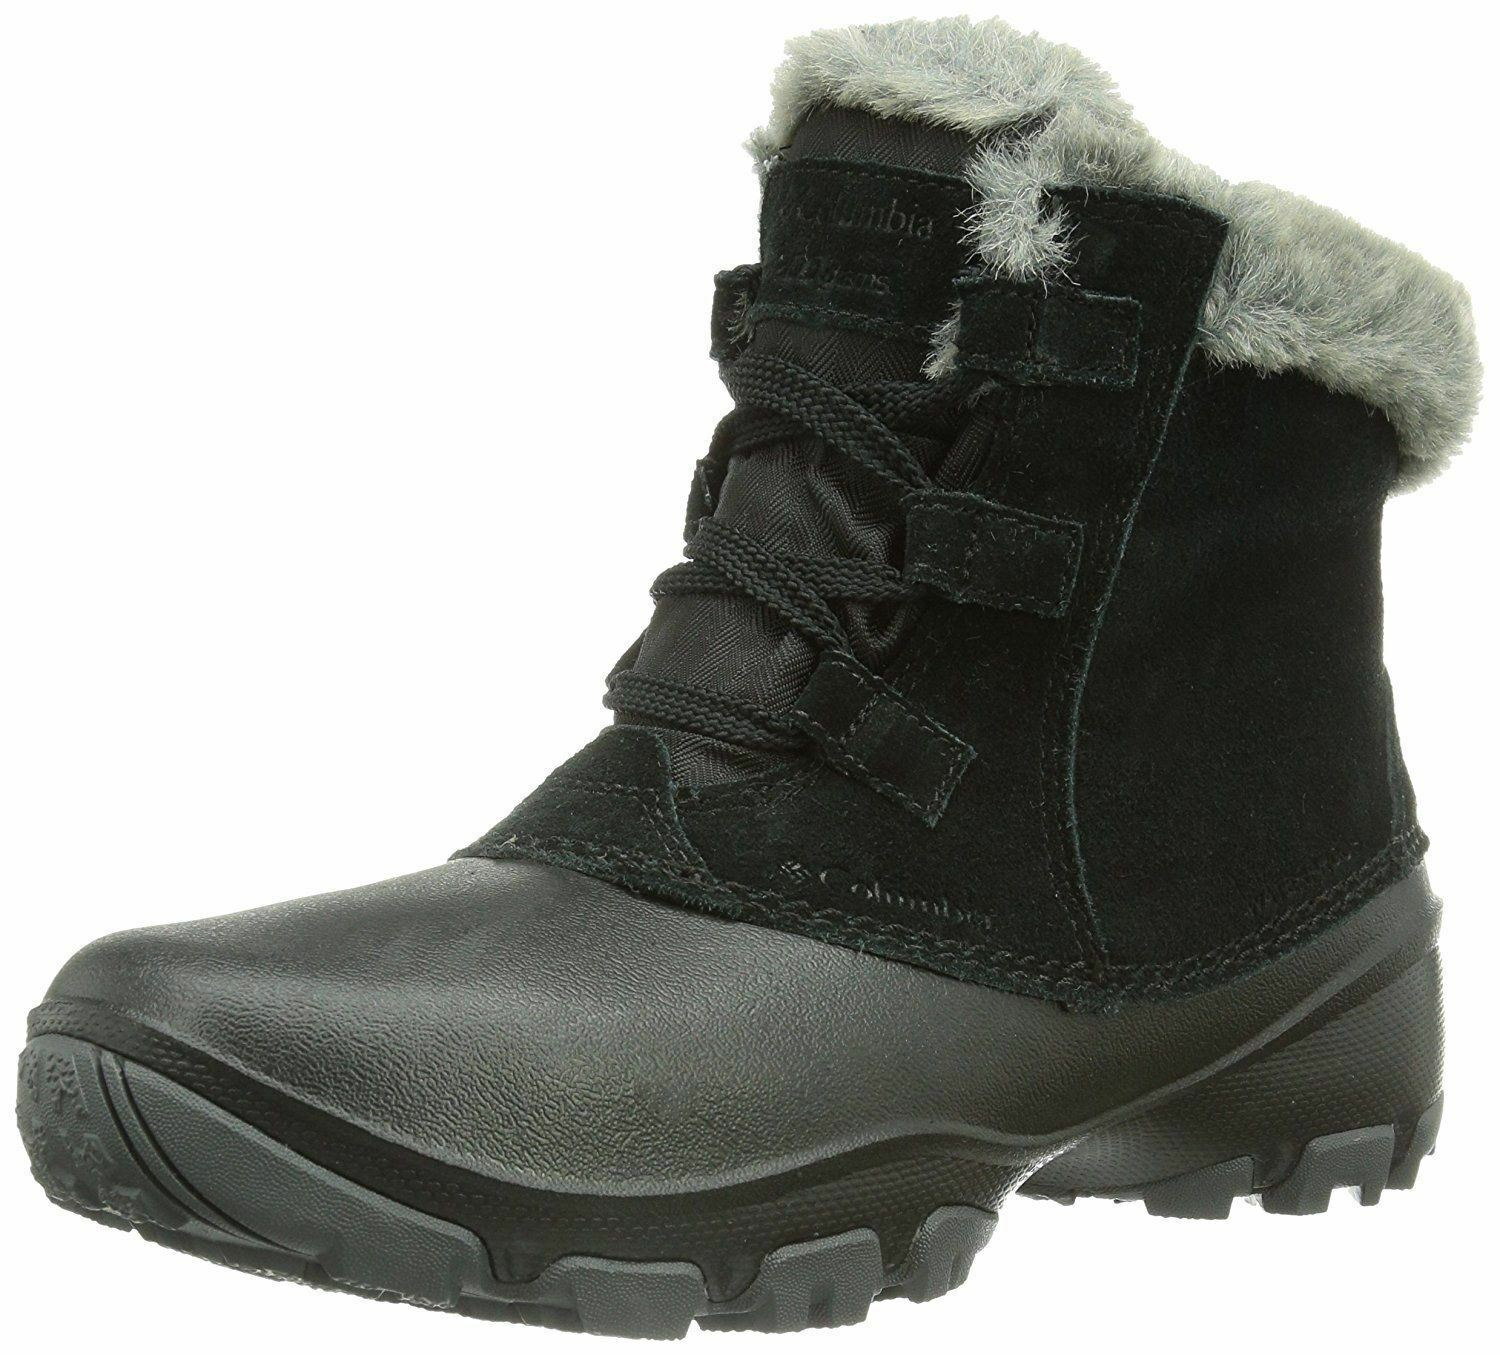 COLUMBIA WOMENS 6.5 SIERRA SUMMETTE SHORTY SNOW BOOTS NWT BL